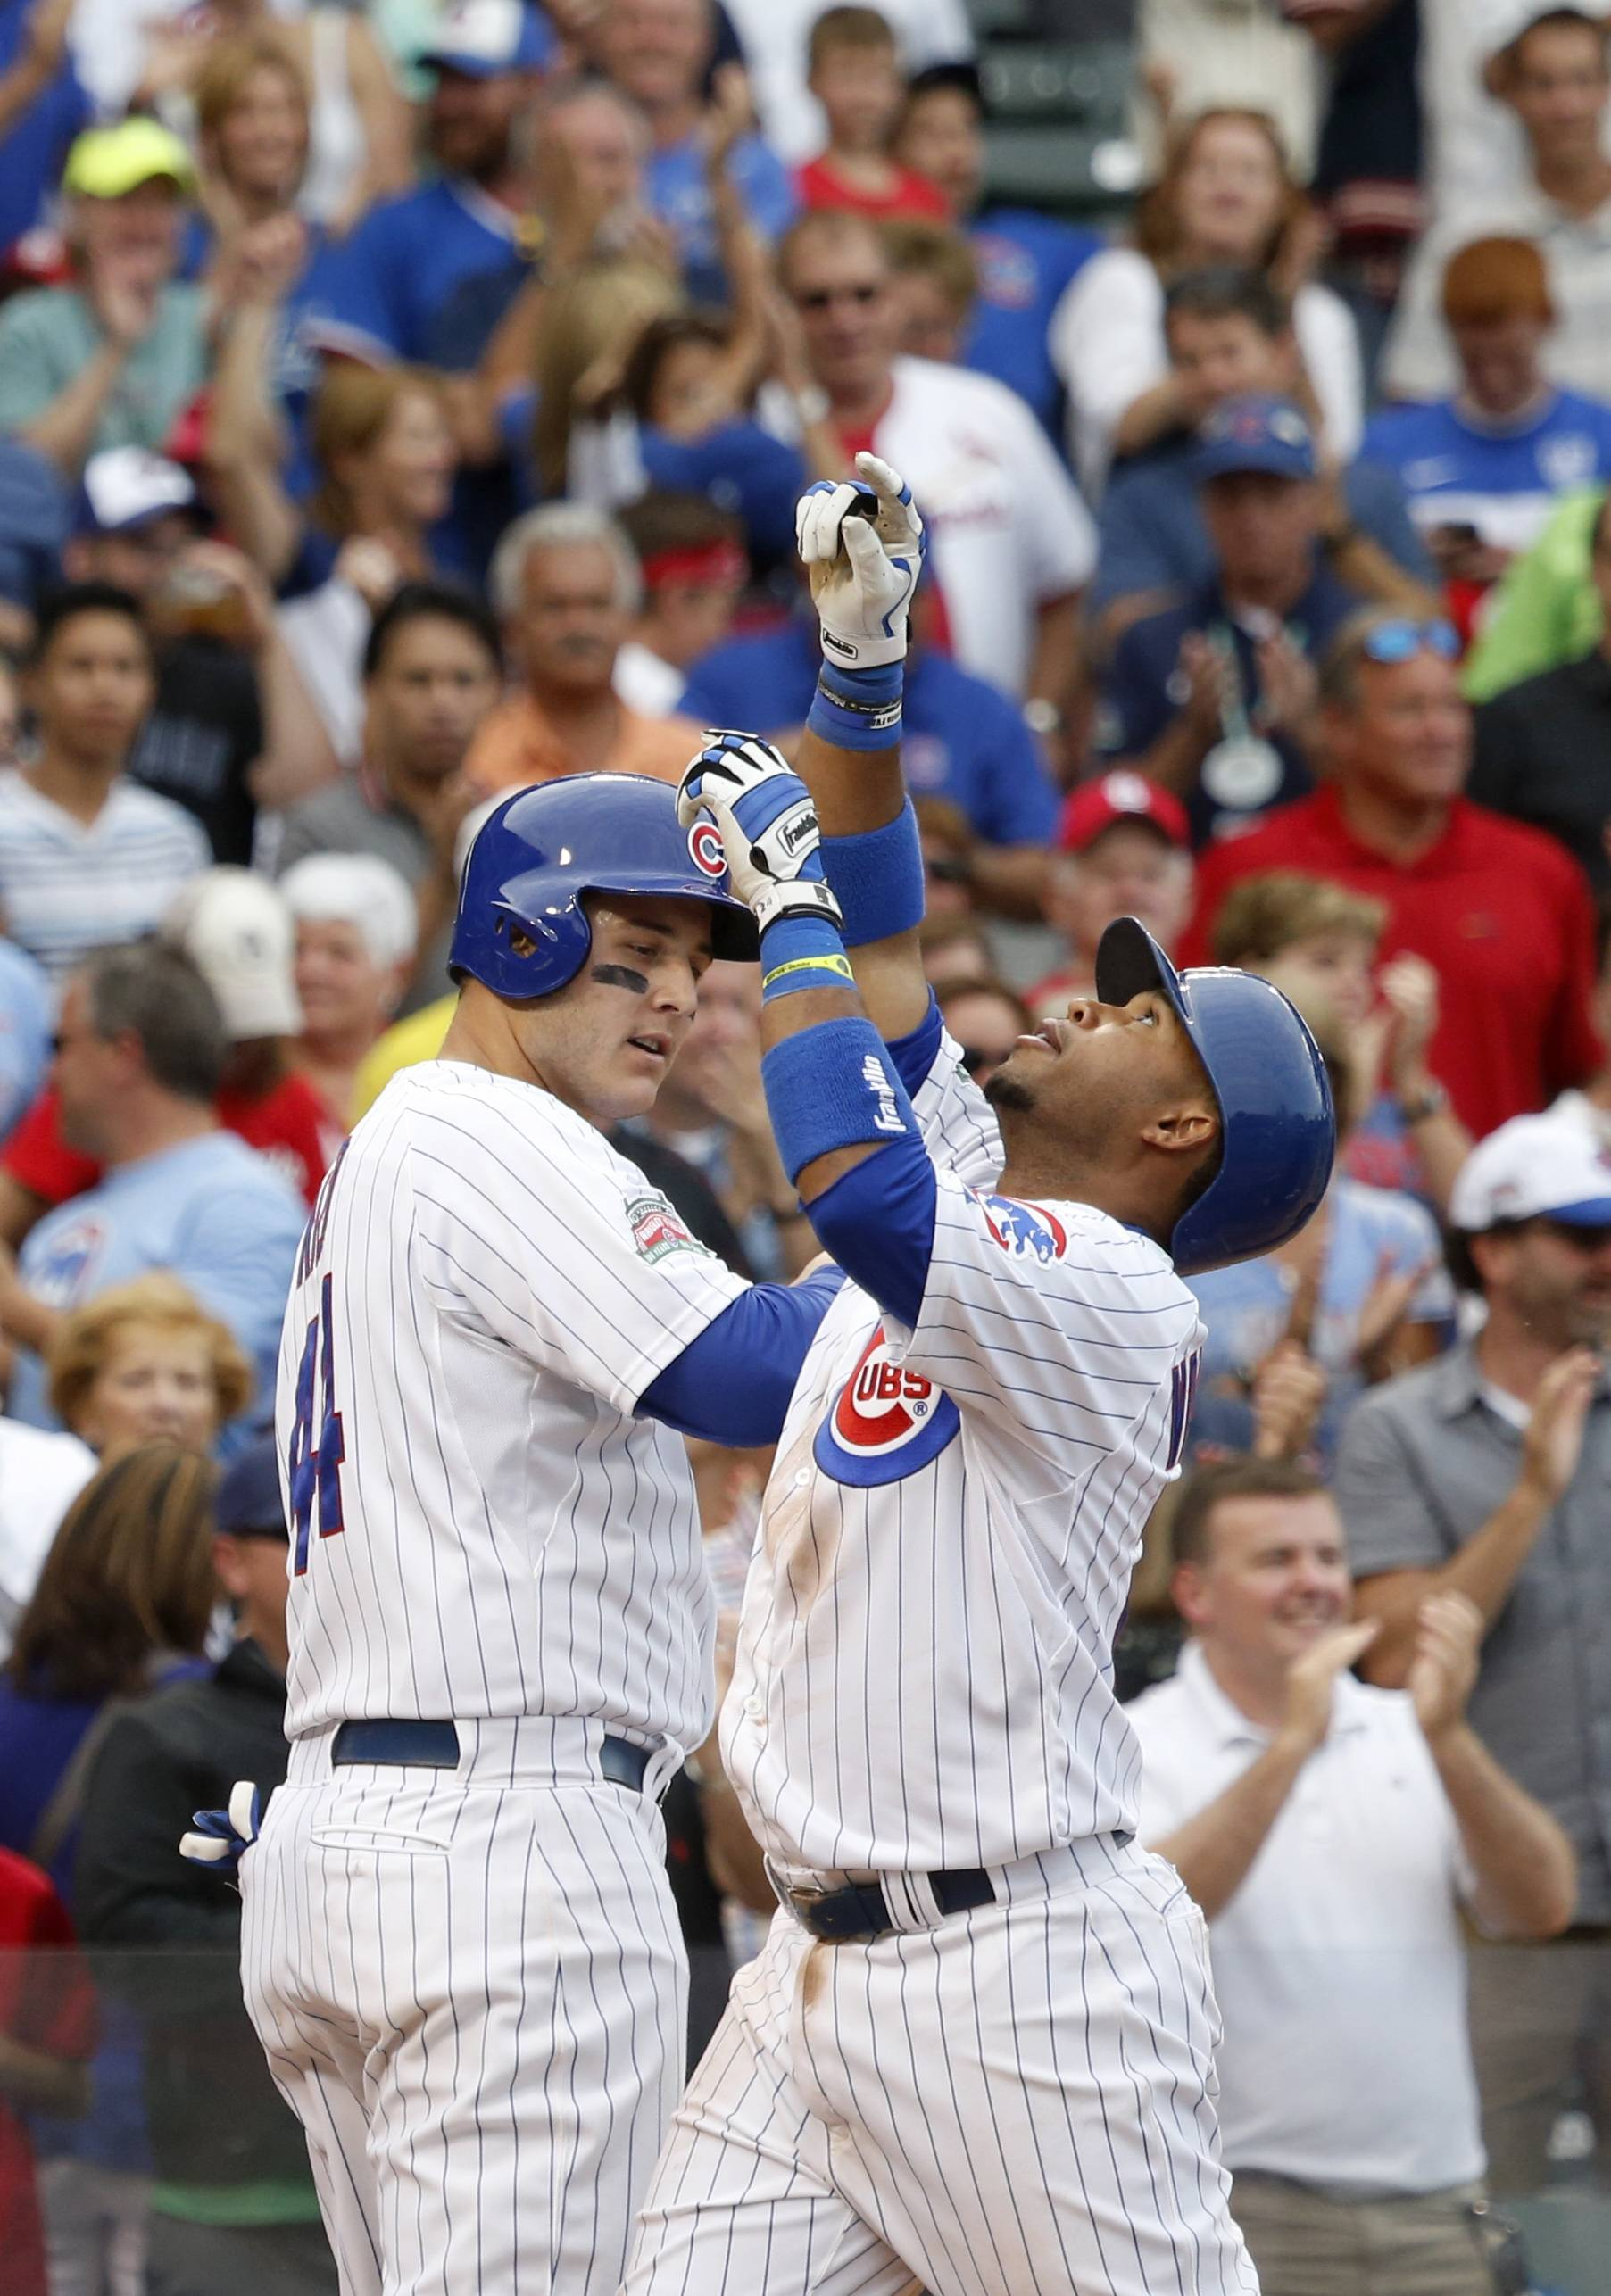 Luis Valbuena, right, celebrates his home run off Cardinals relief pitcher Kevin Siegrist during the seventh inning of the Cubs' victory over St. Louis on Friday.